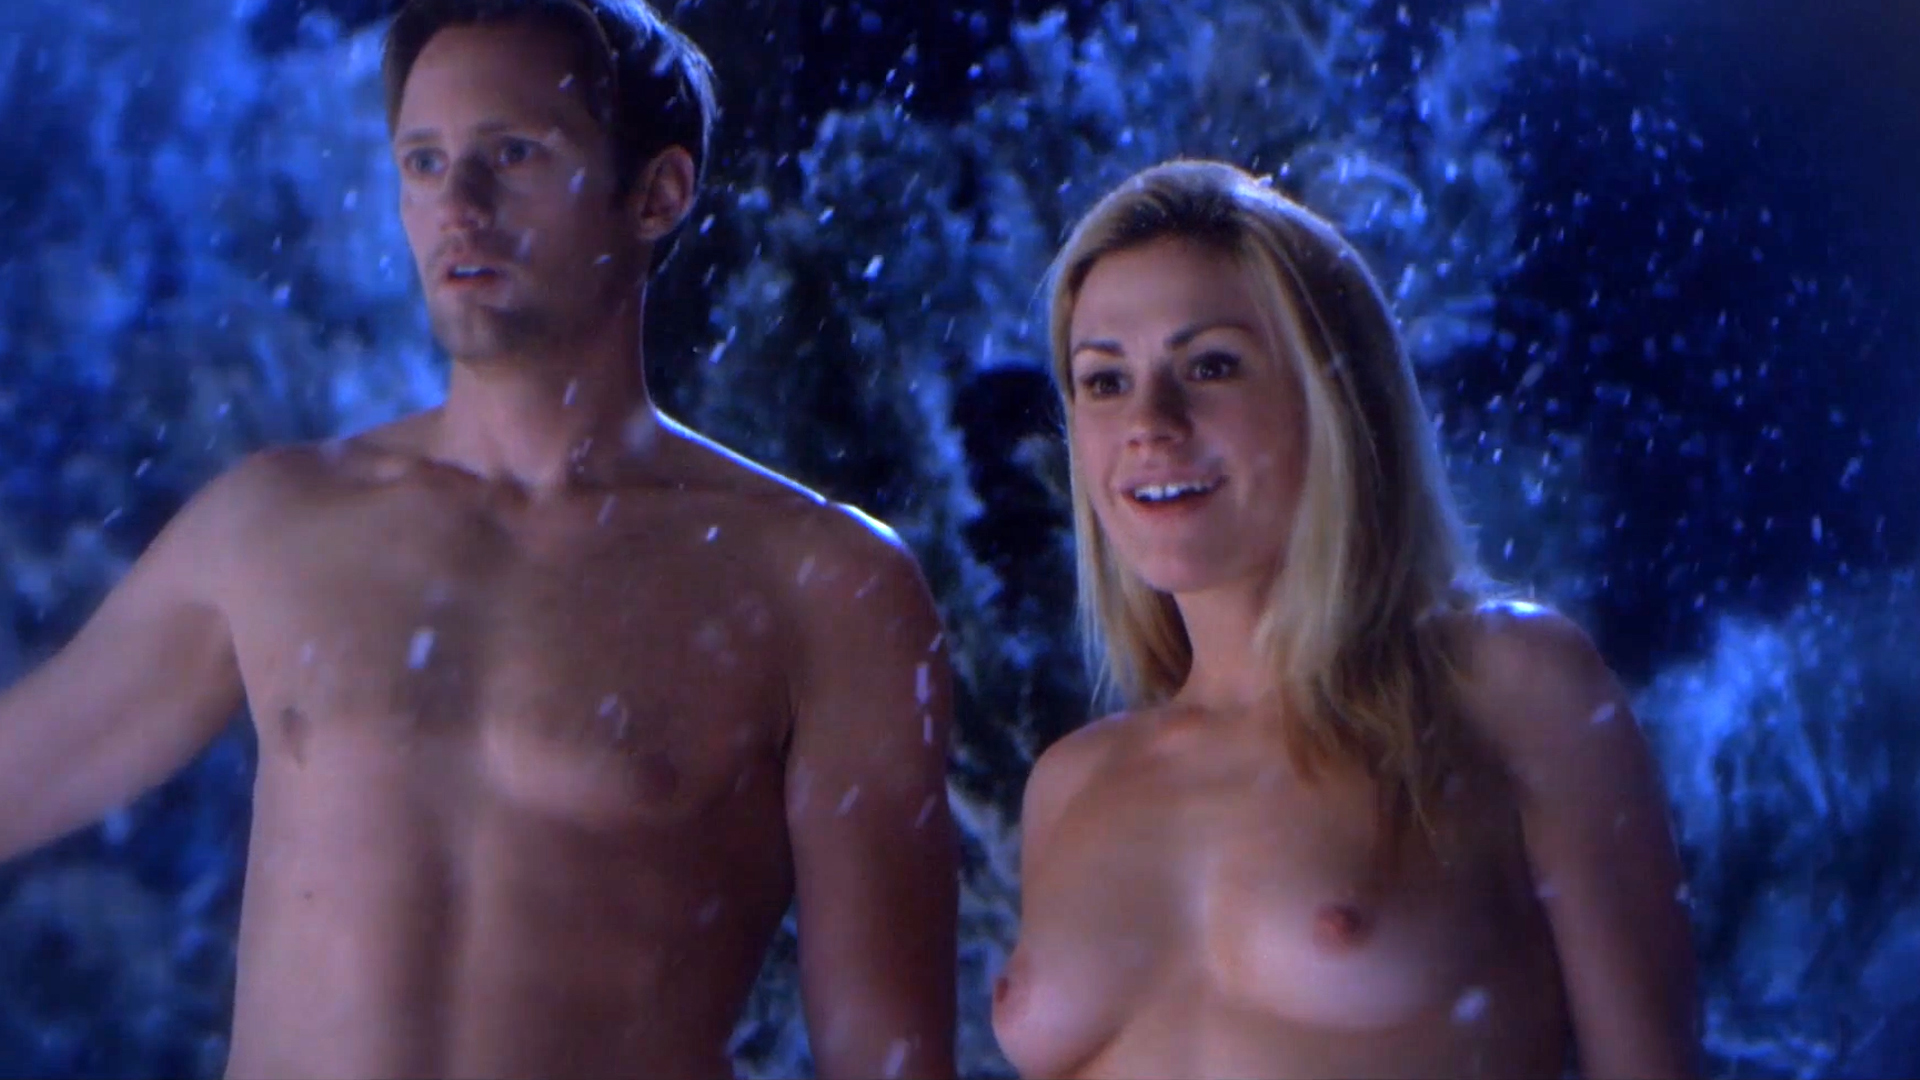 Anna paquin true blood nude chicks